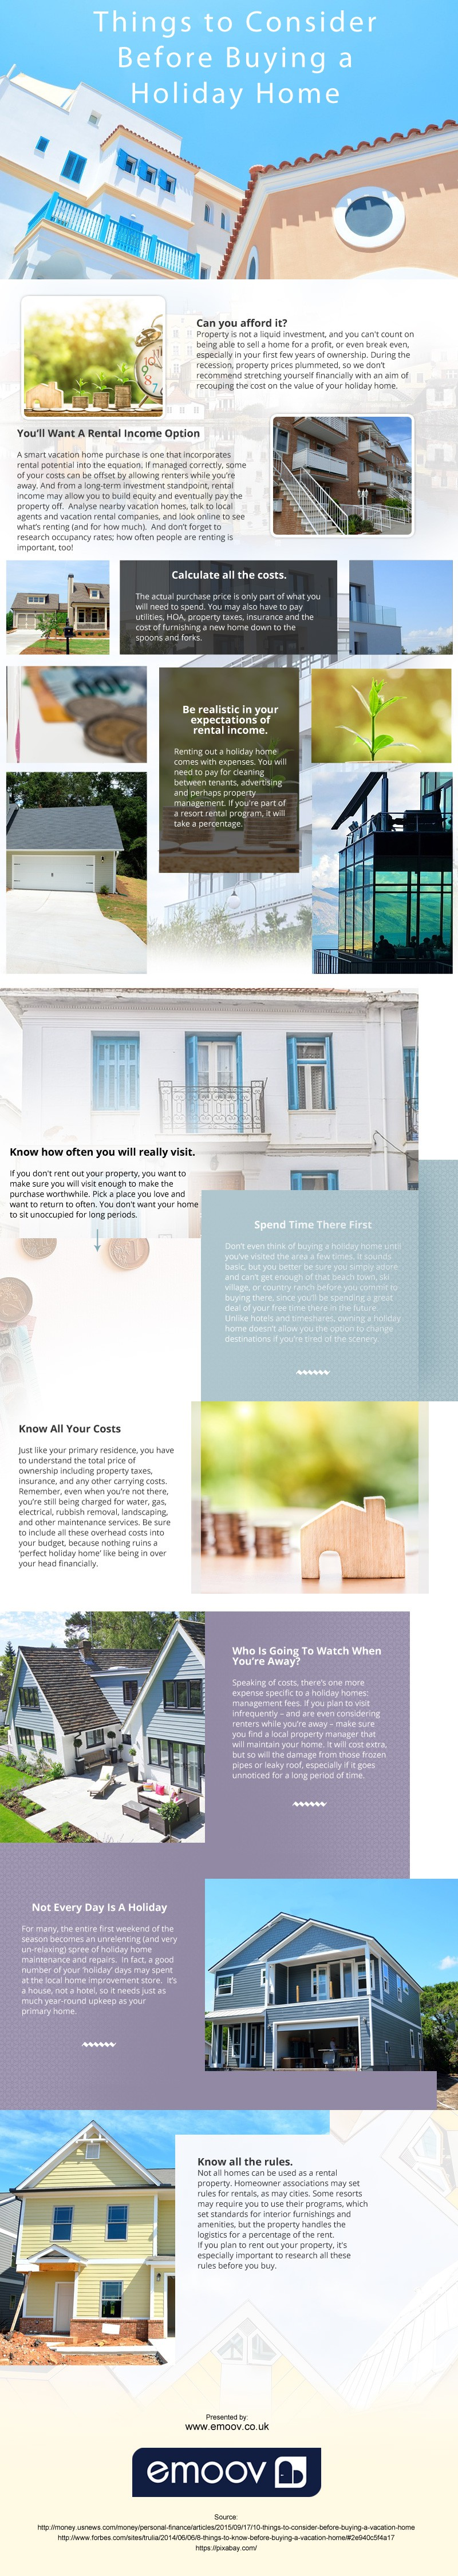 Things-to-Consider-Before-Buying-a-Vacation-Home Infographic